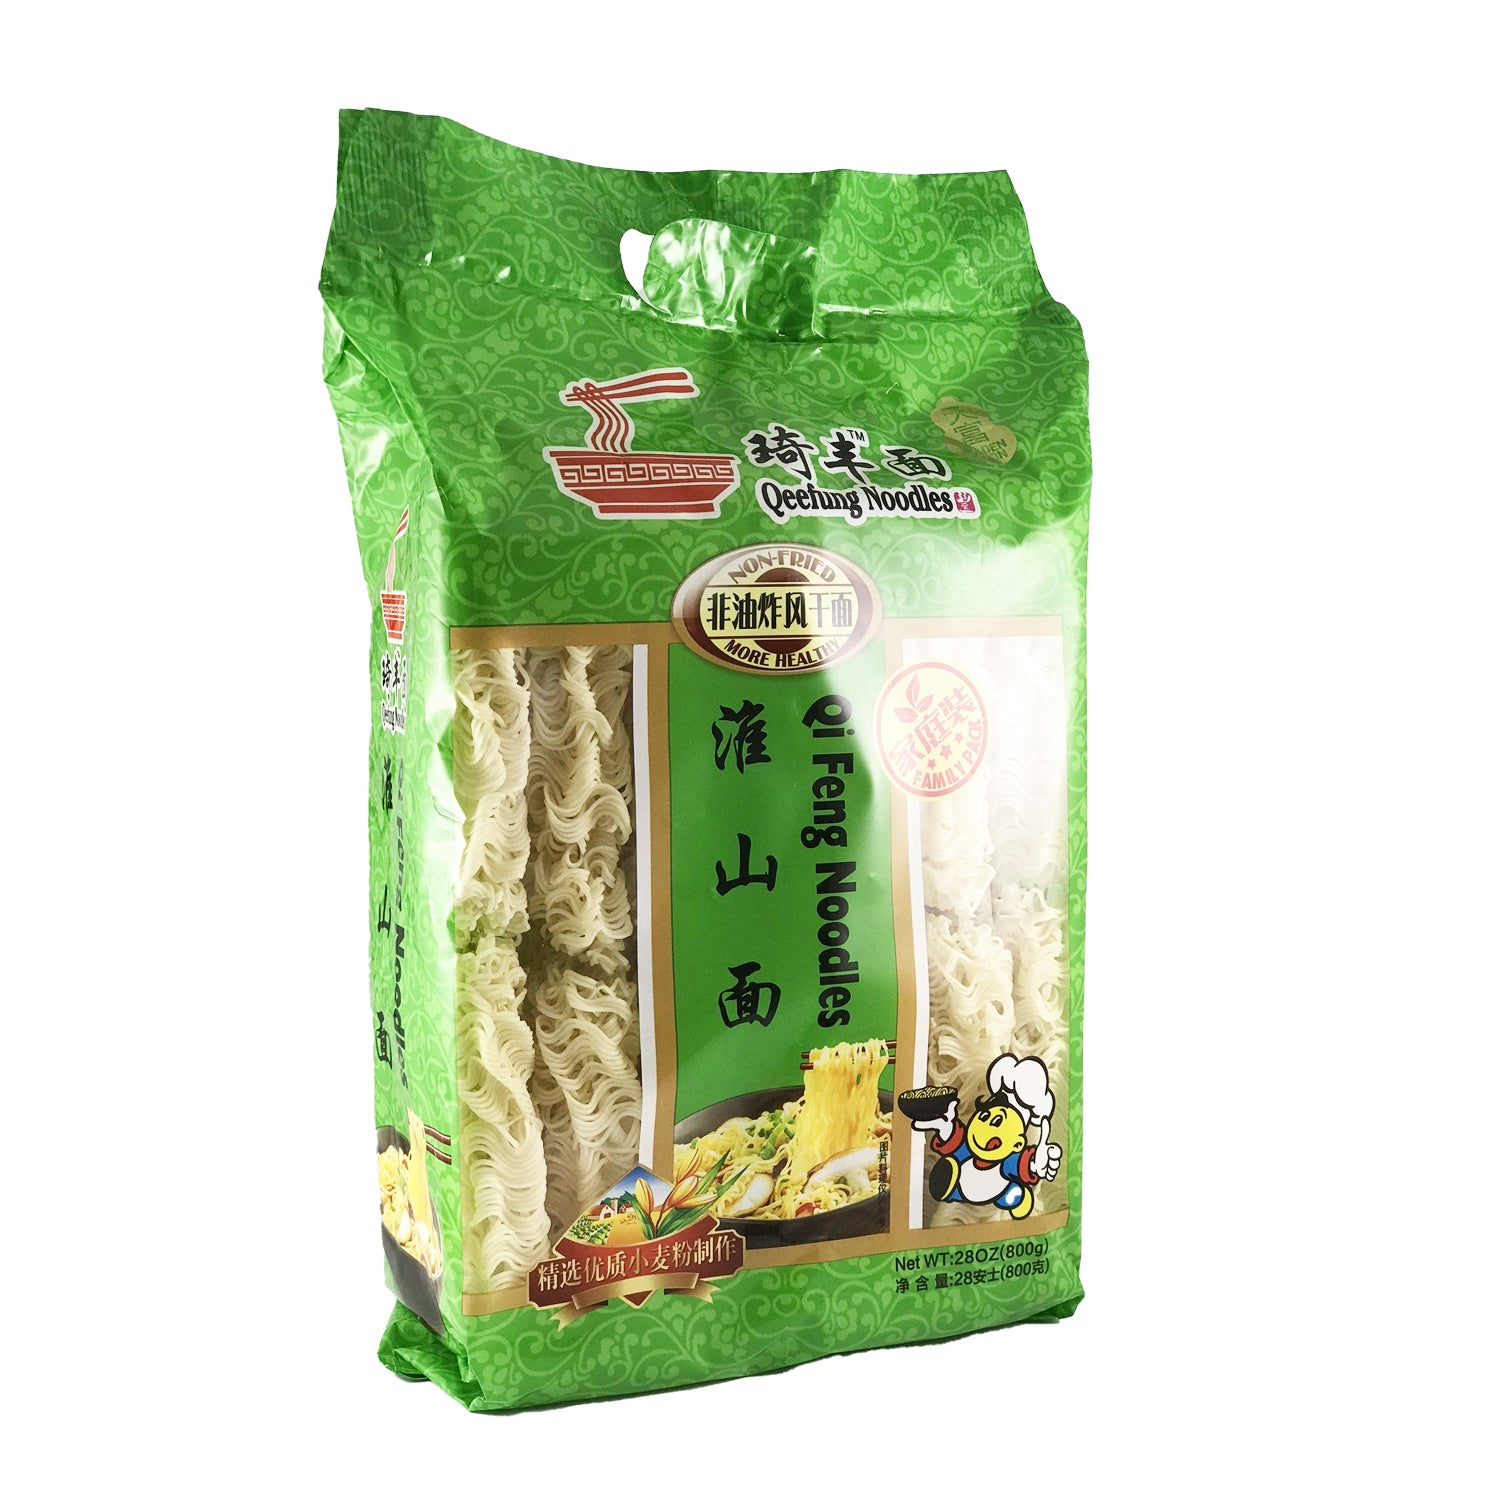 QeeFung Dried Noodle 琦豐麺 淮山麺